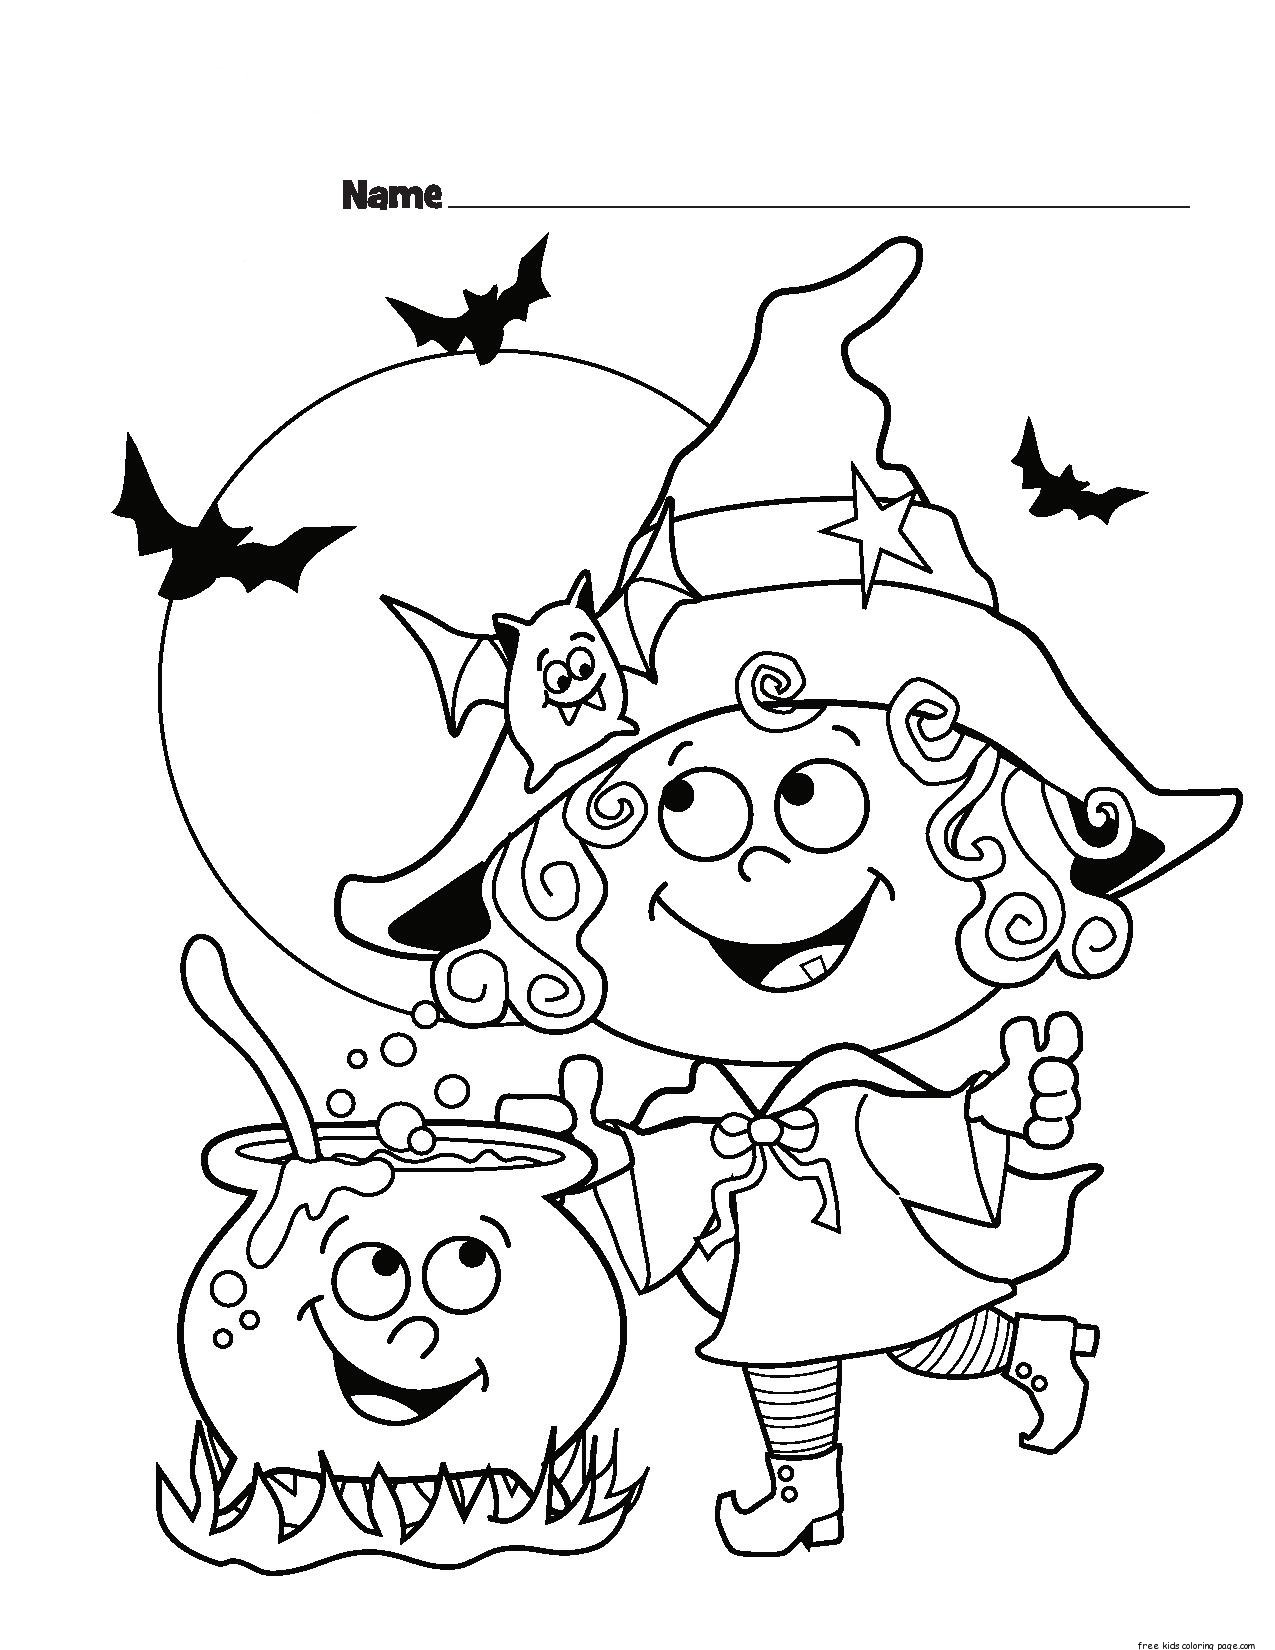 printable halloween coloring pages and activities - childrens halloween witch costumes coloring page for